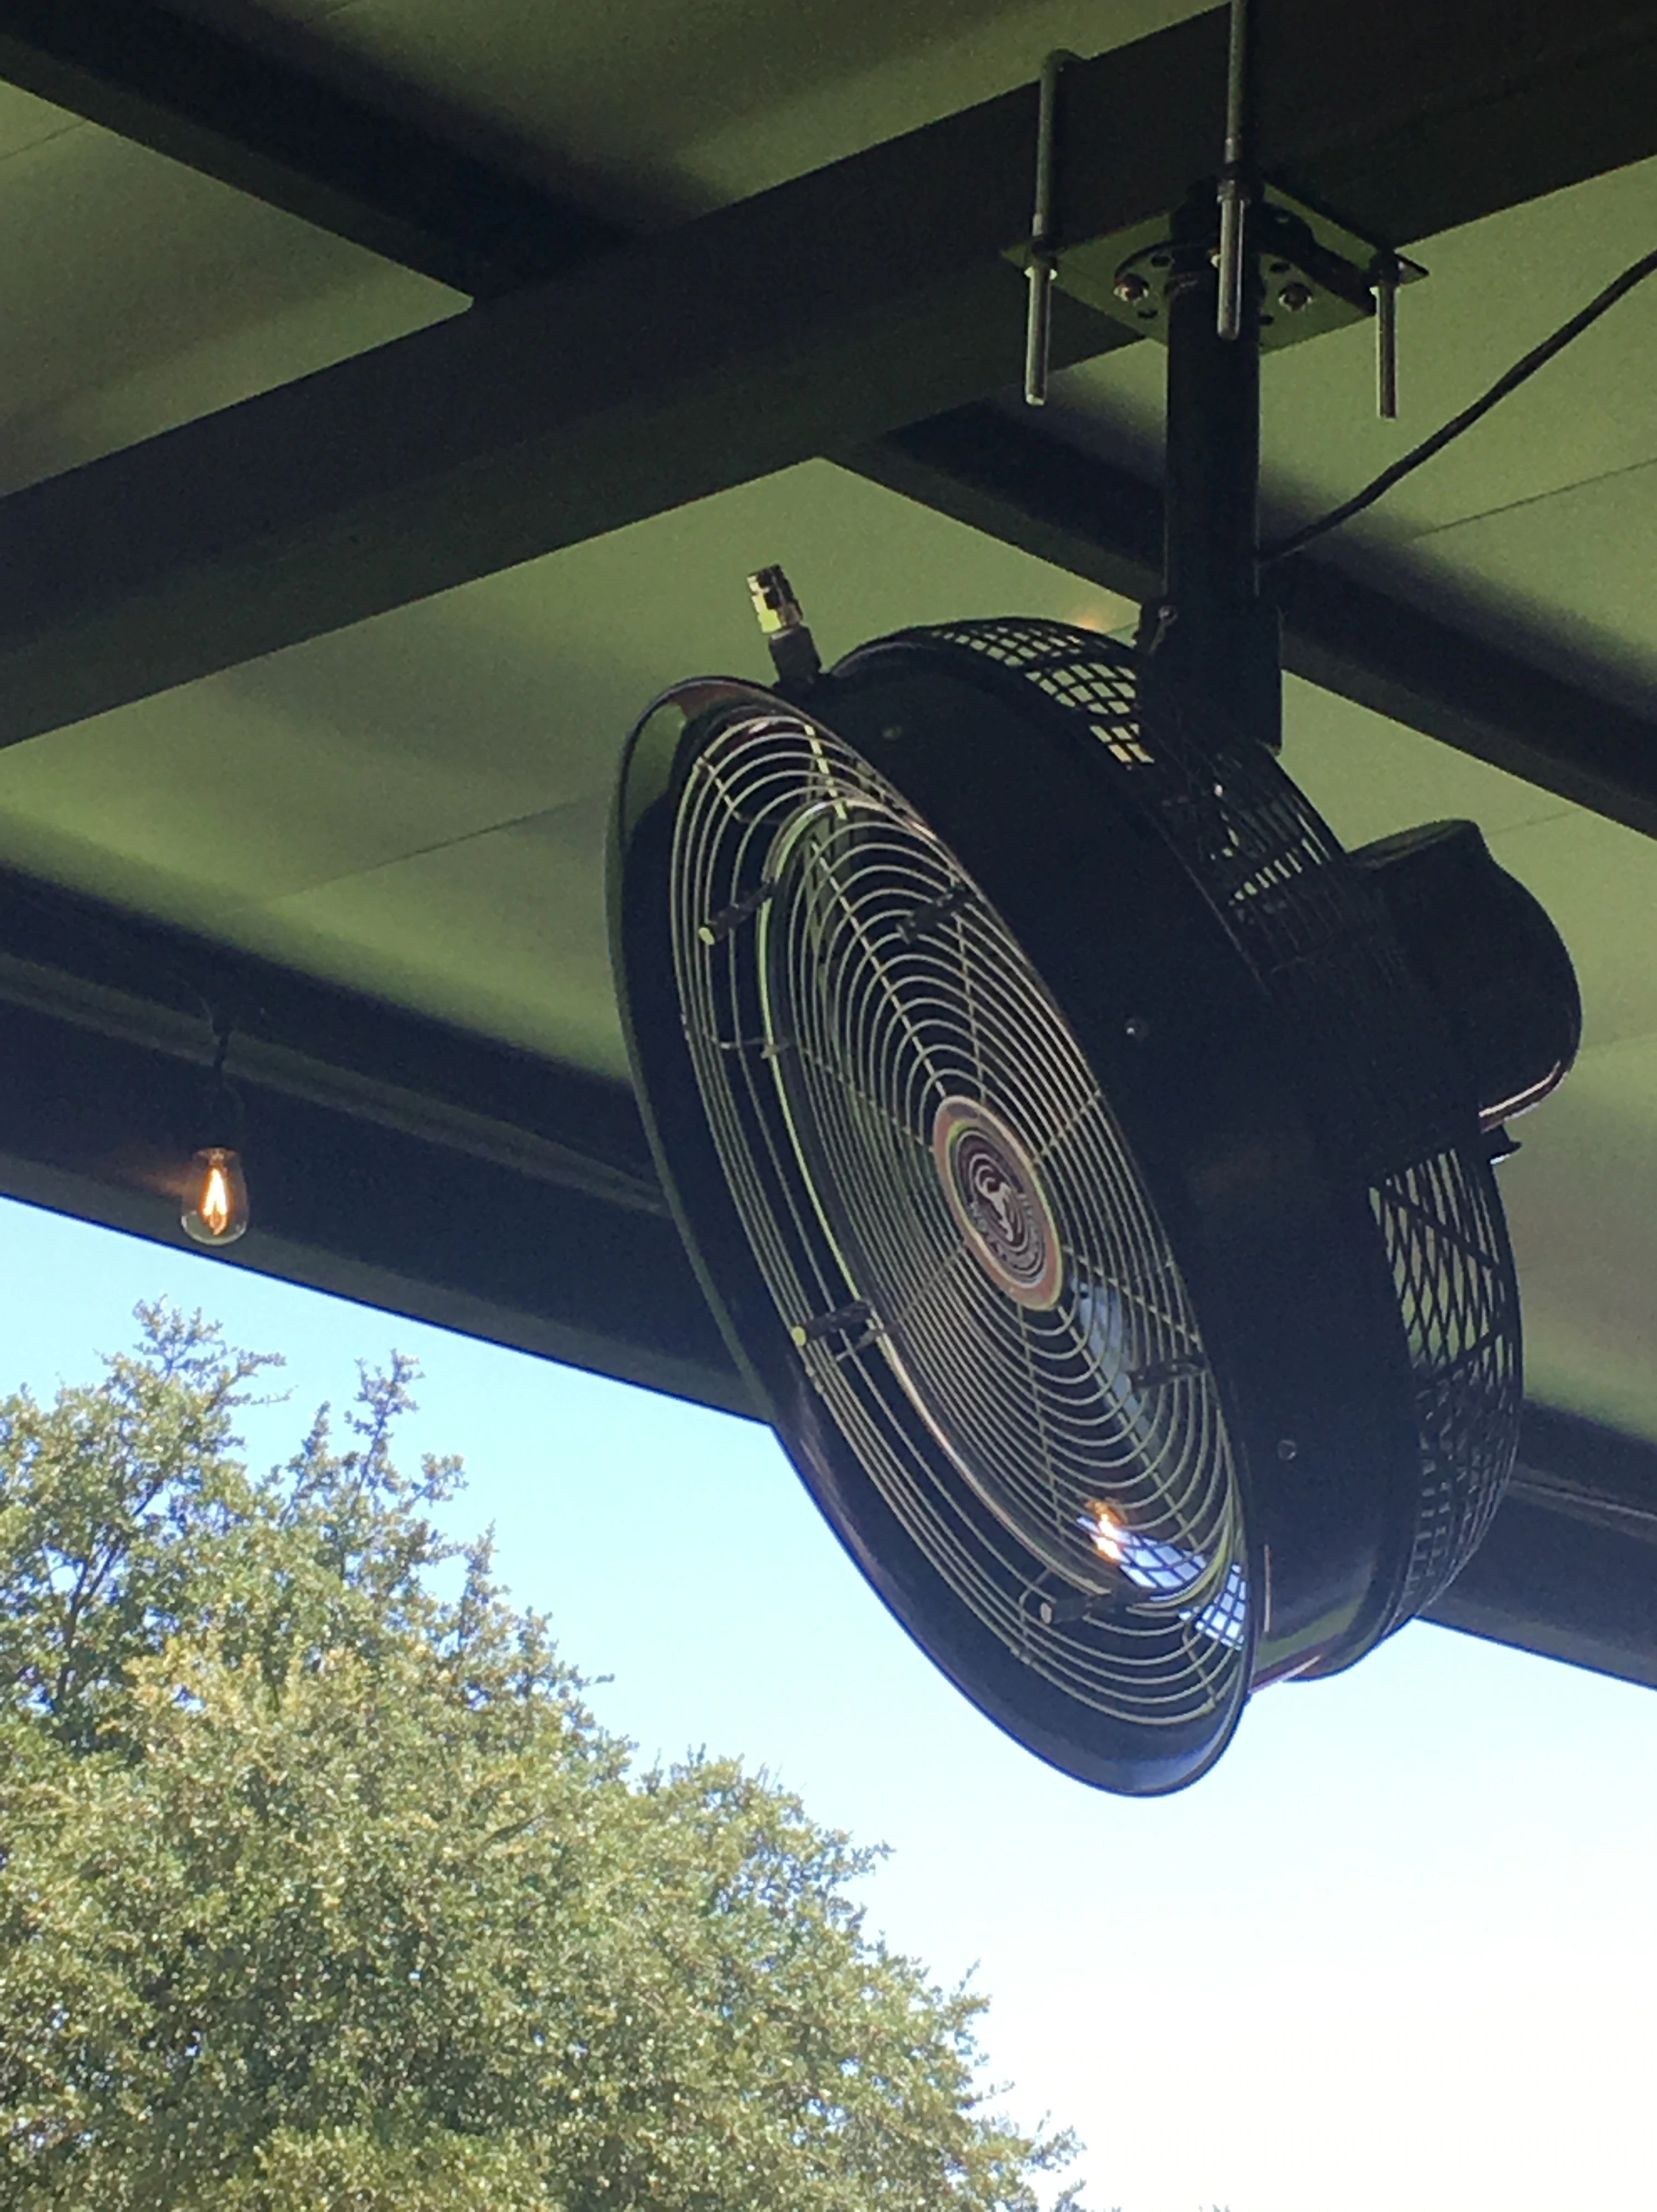 A professional series fan mounted on a ceiling